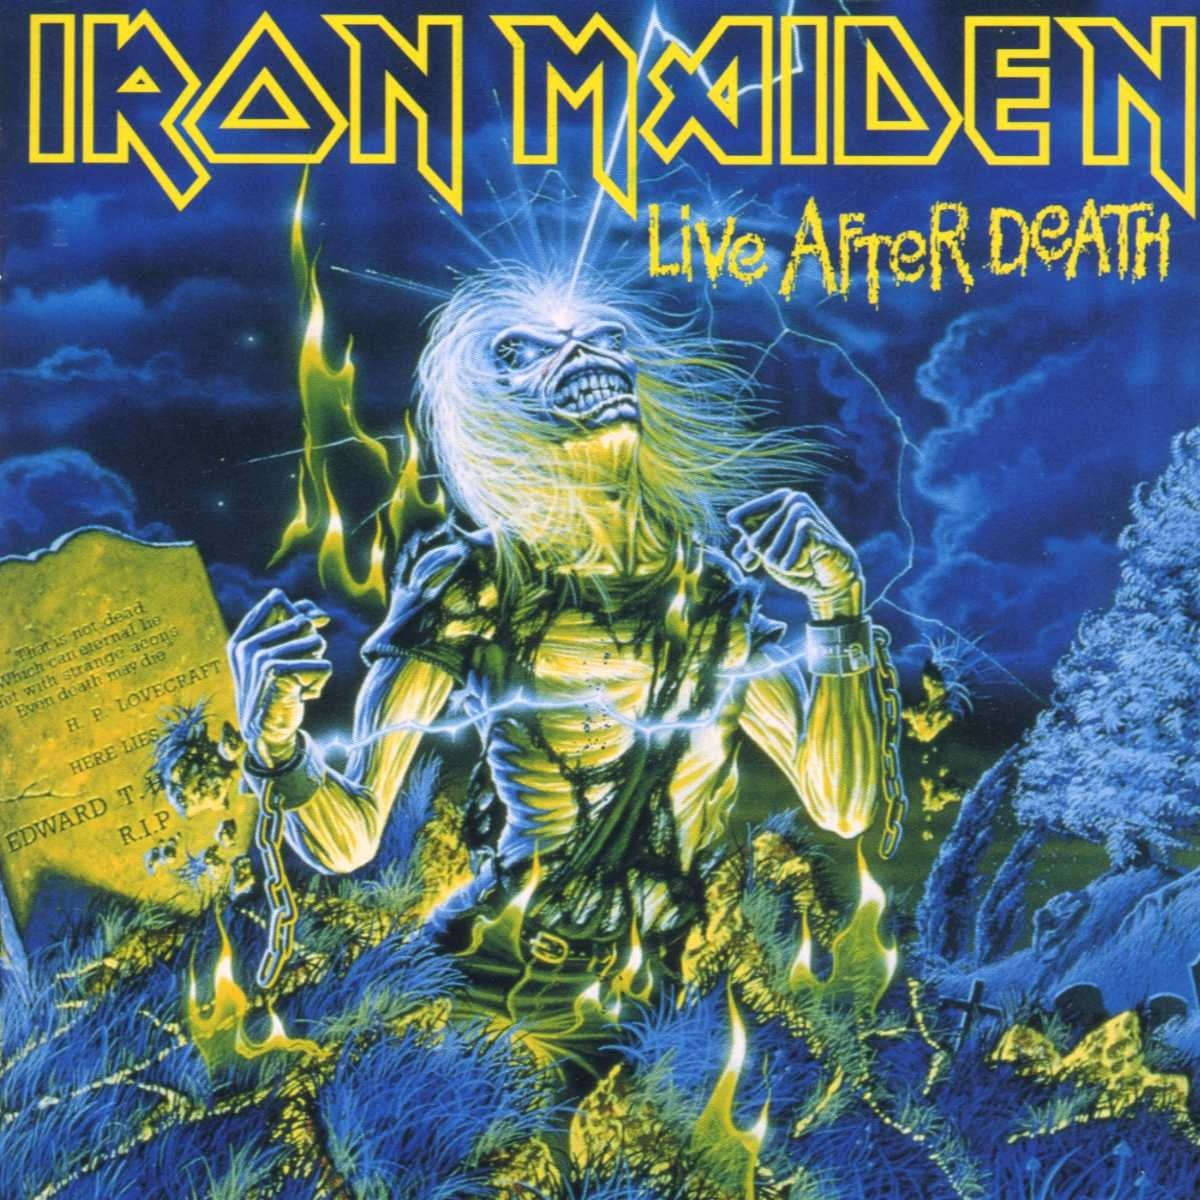 Iron Maiden - Live After Death by EMI